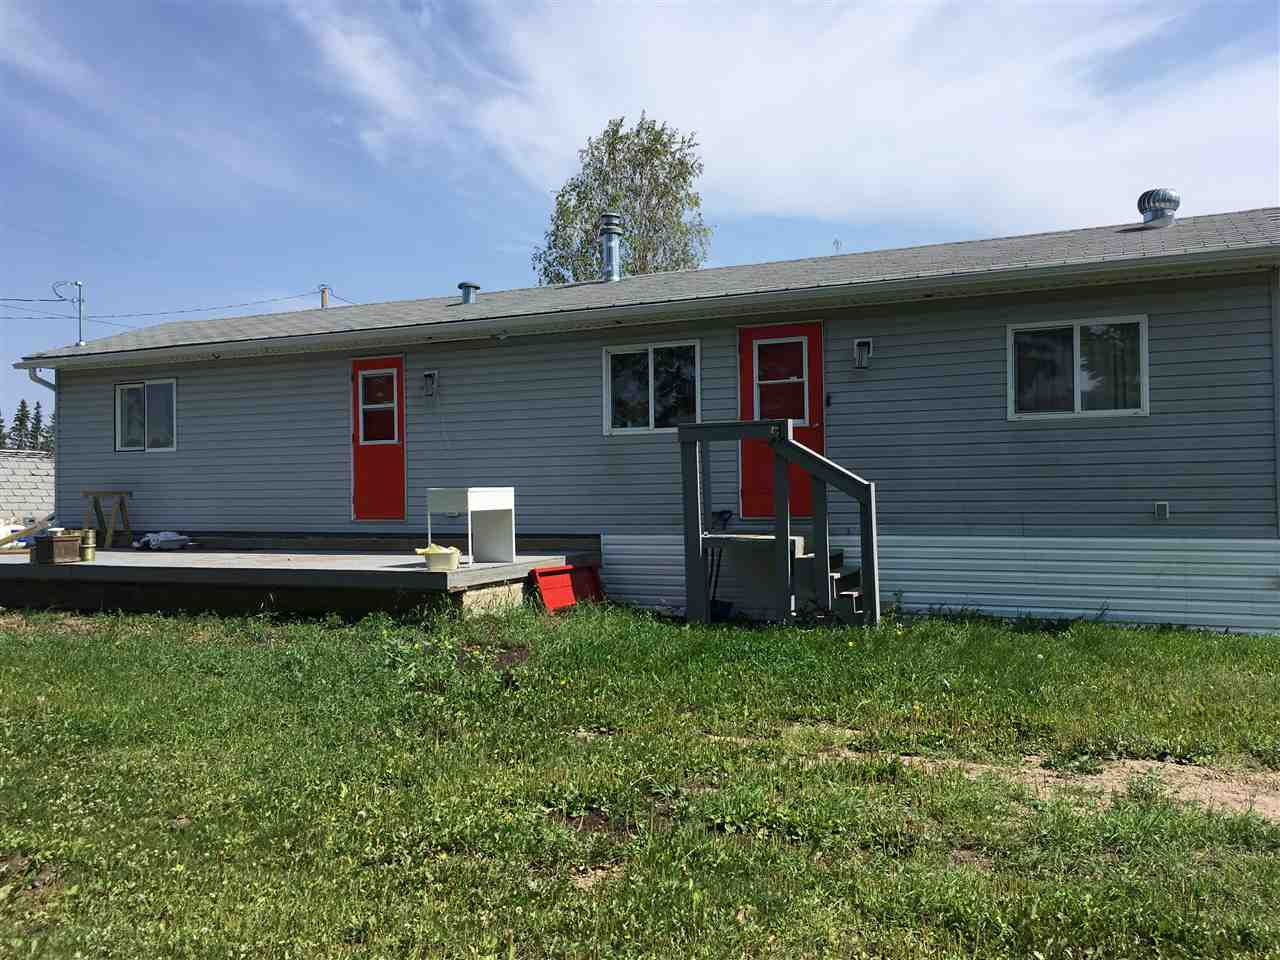 Main Photo: 5004 49 Avenue: Busby Manufactured Home for sale : MLS®# E4123196